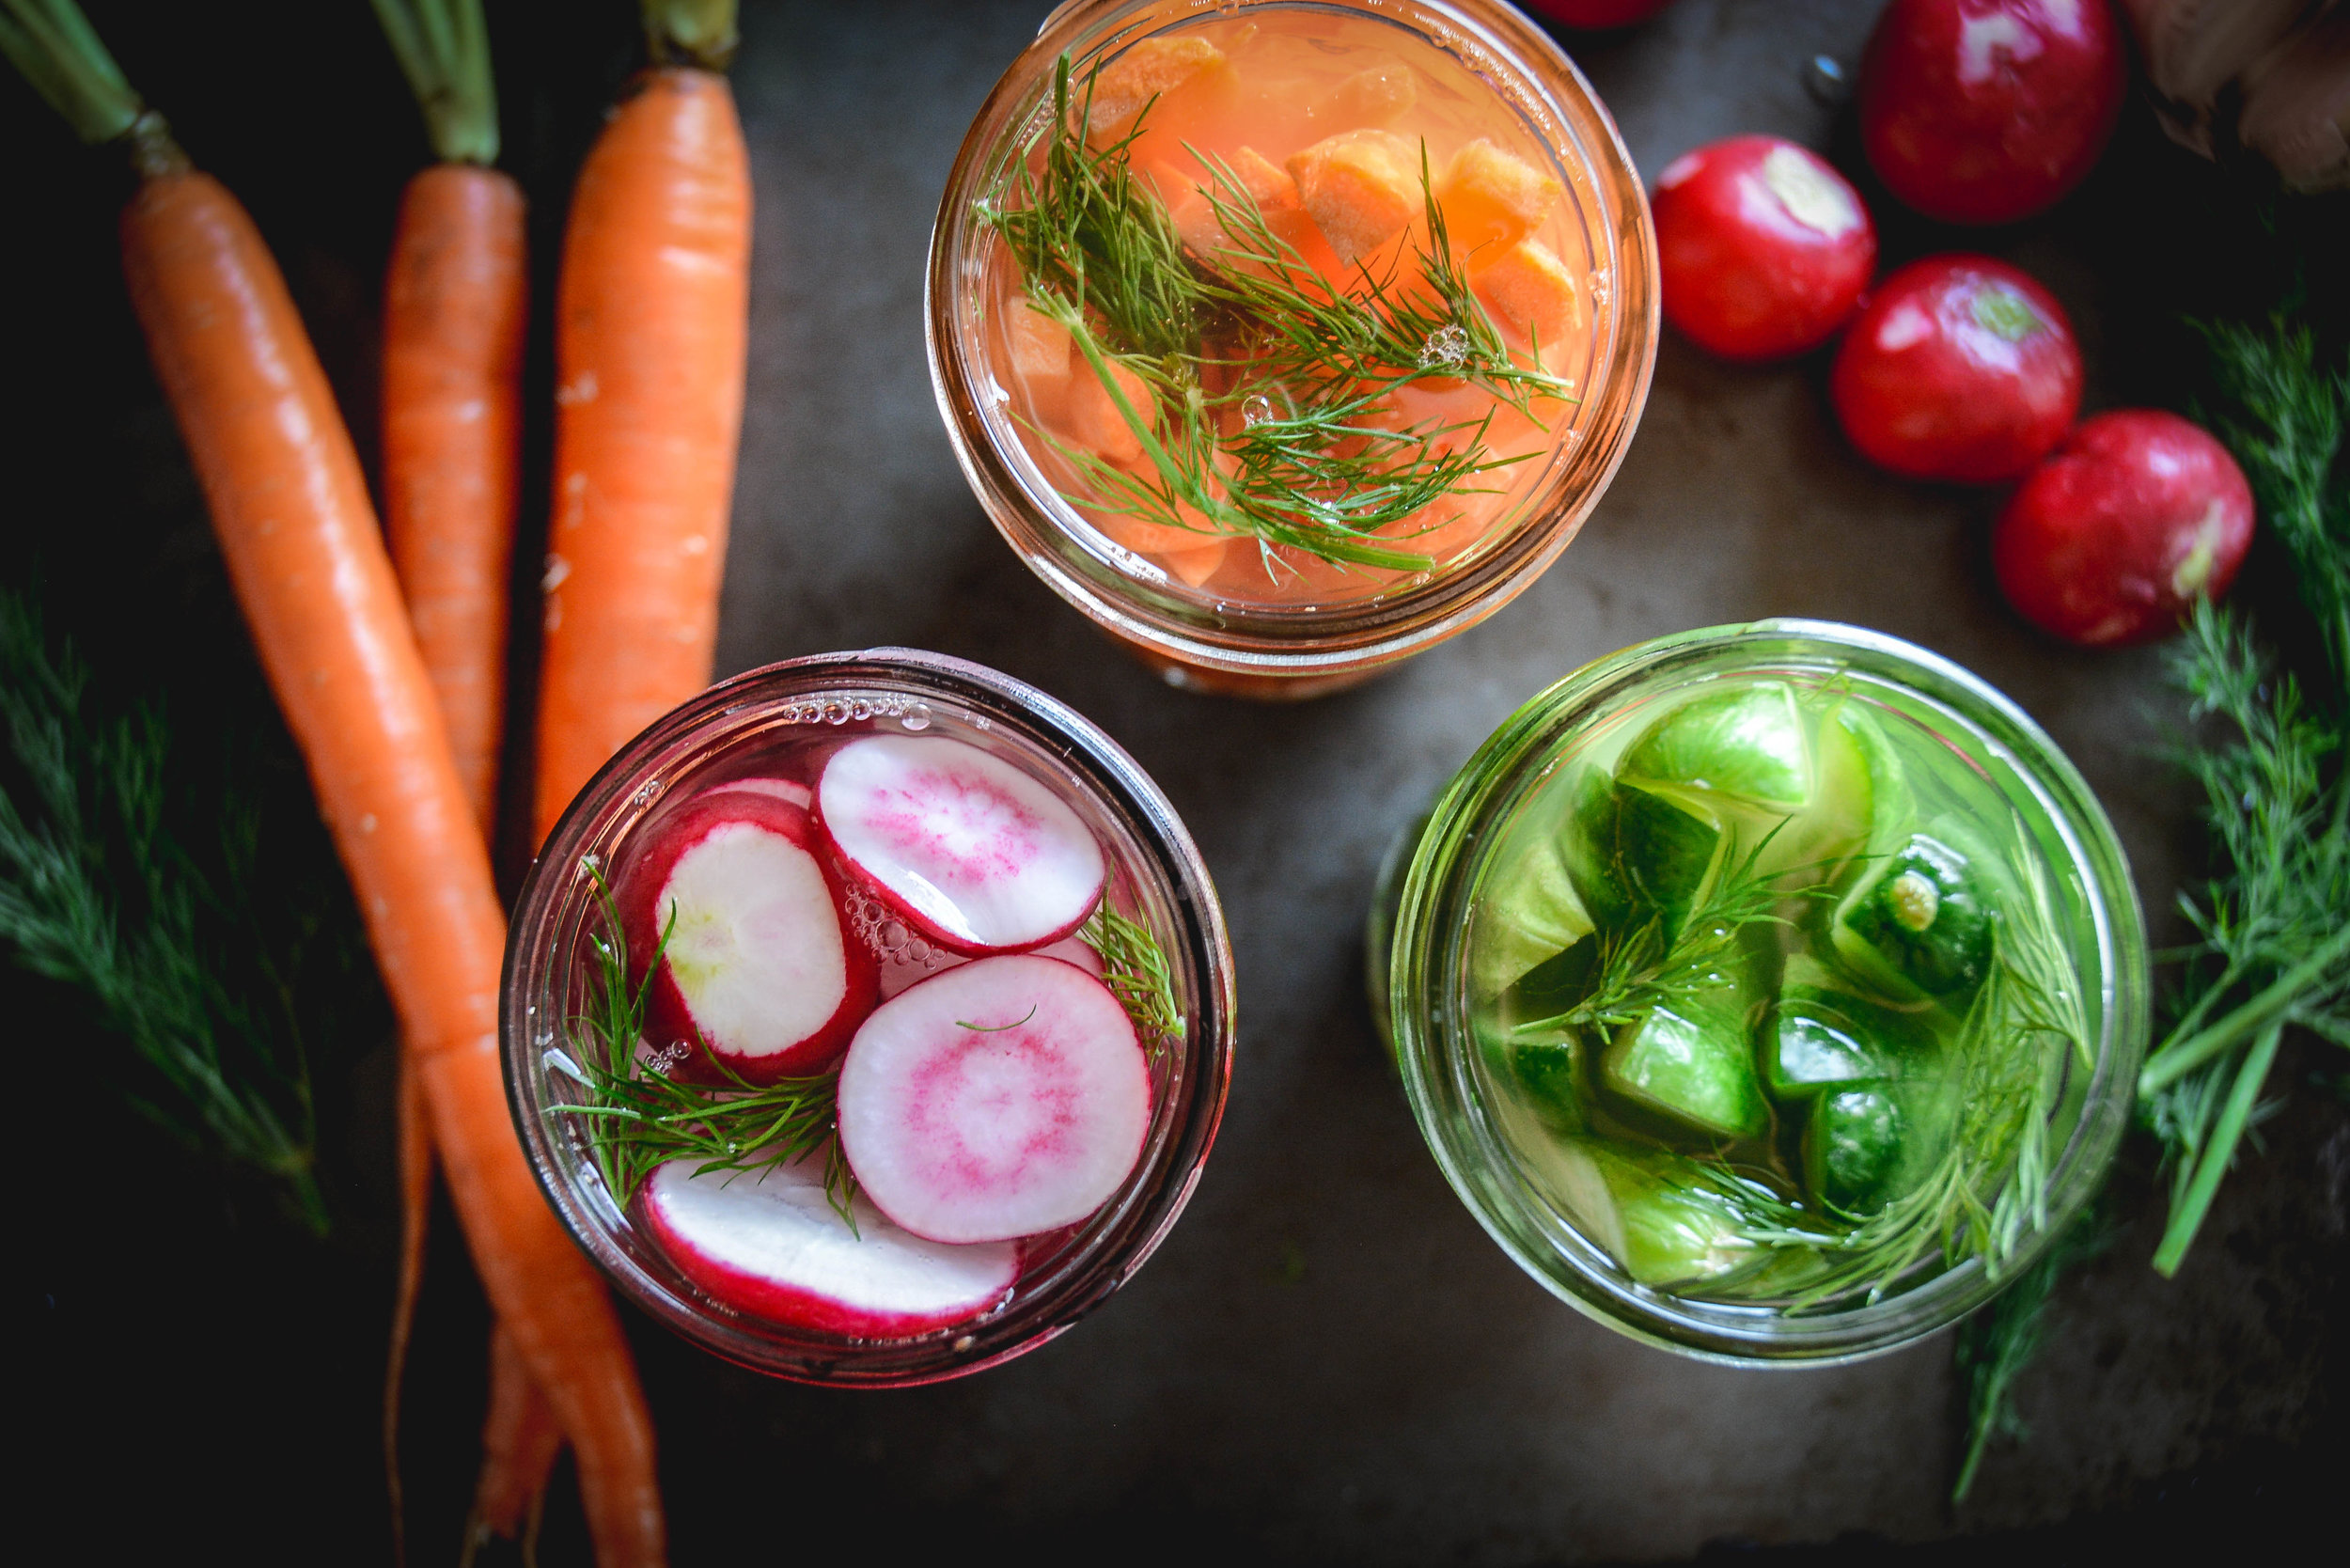 carrots, pickles and radishes in jars with dill